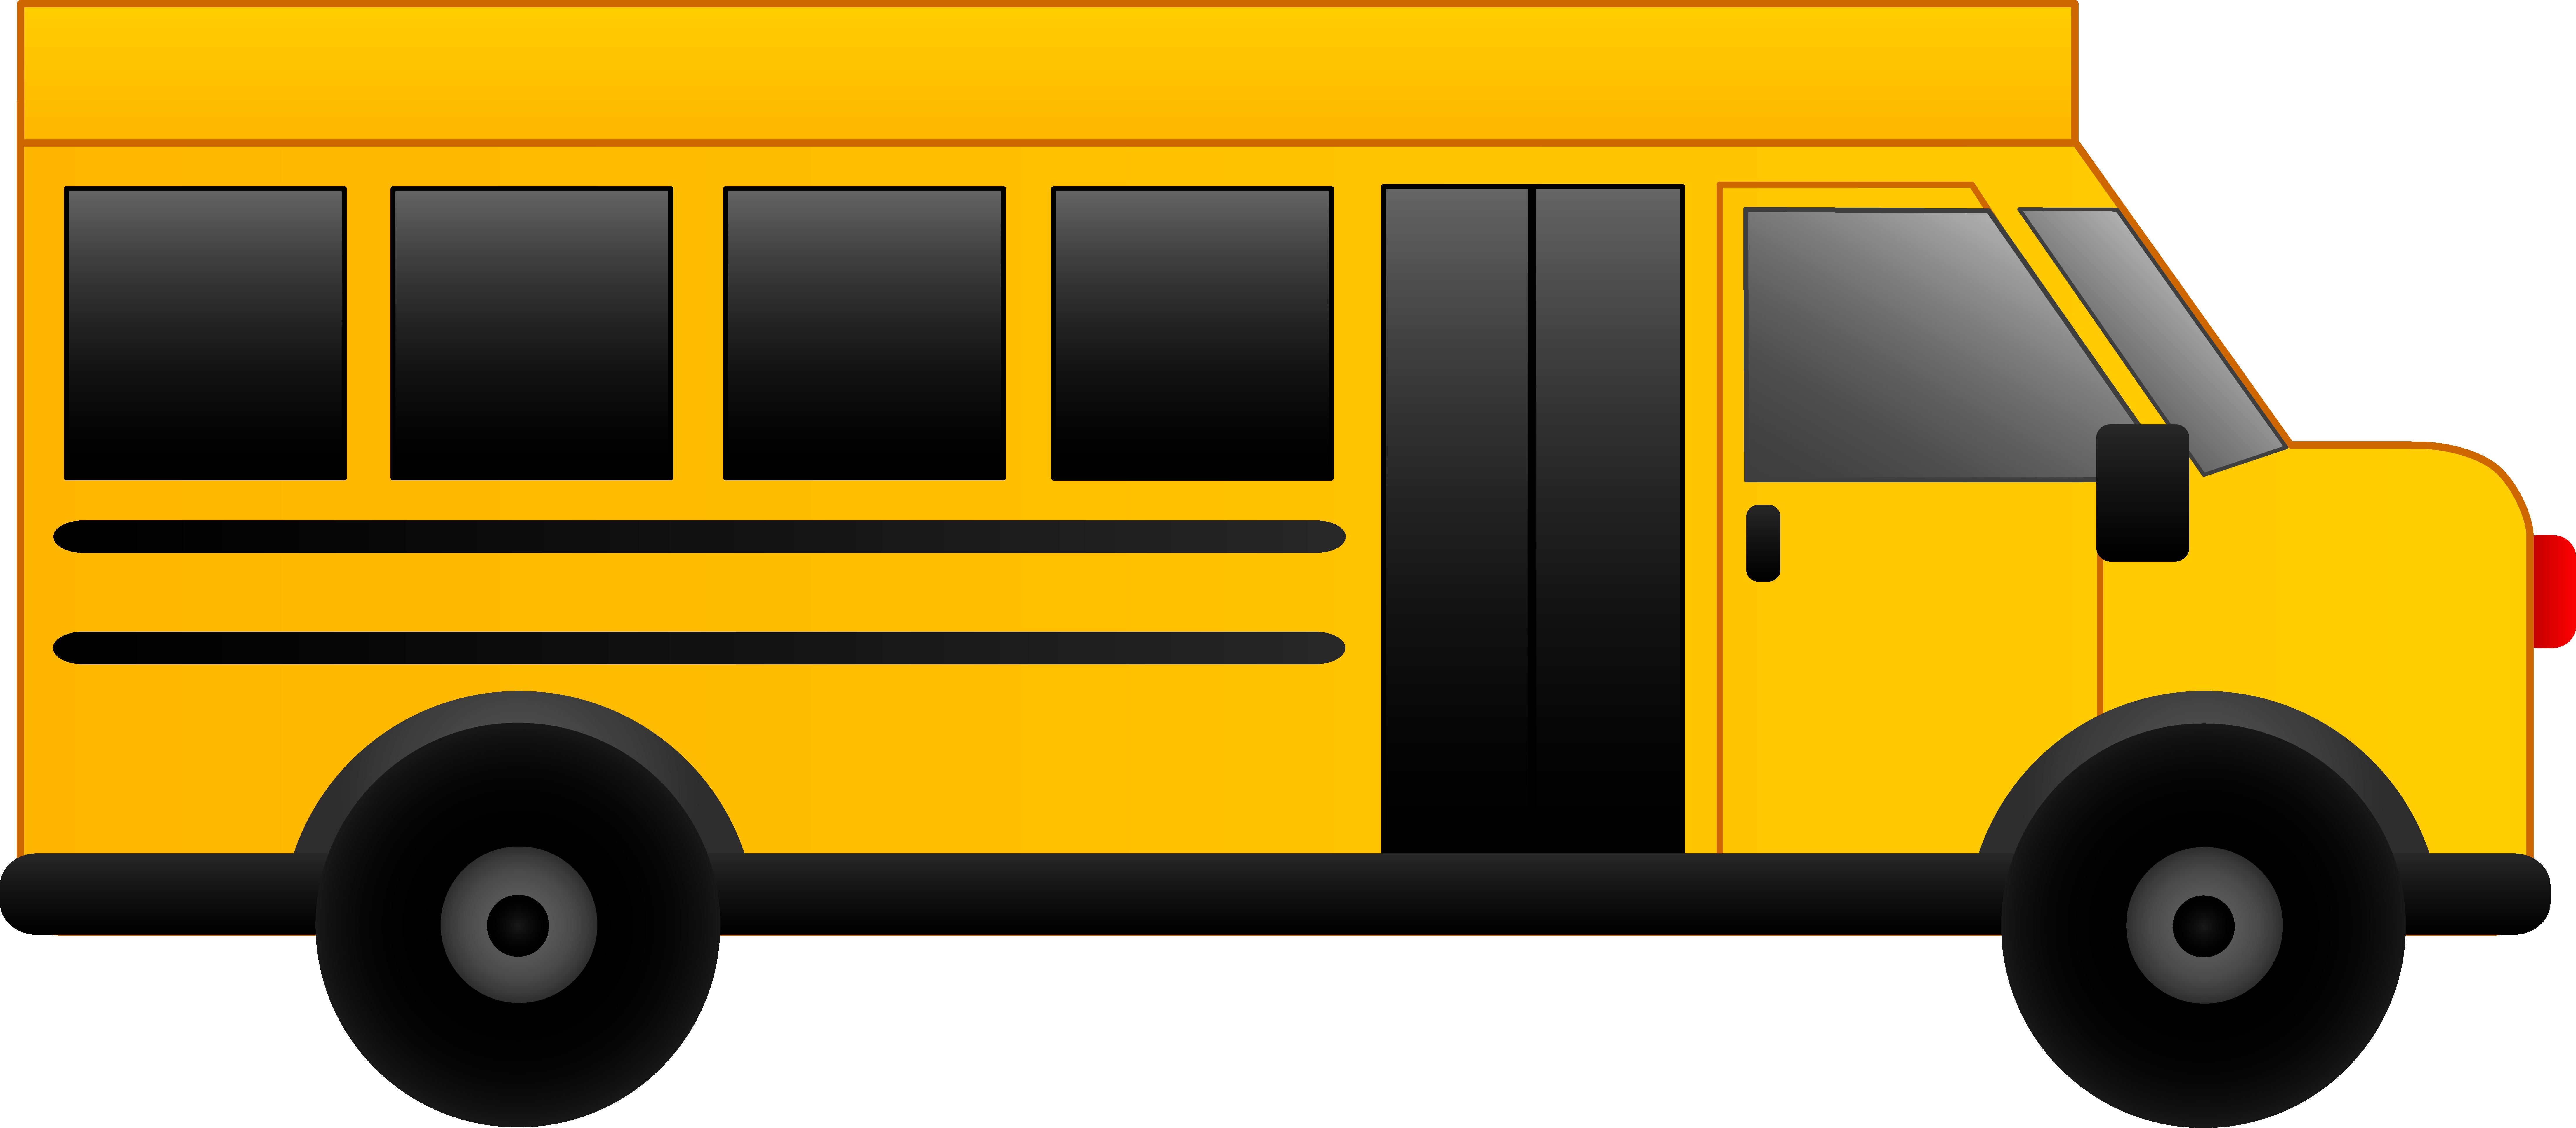 High School Bus Free Download PNG Images